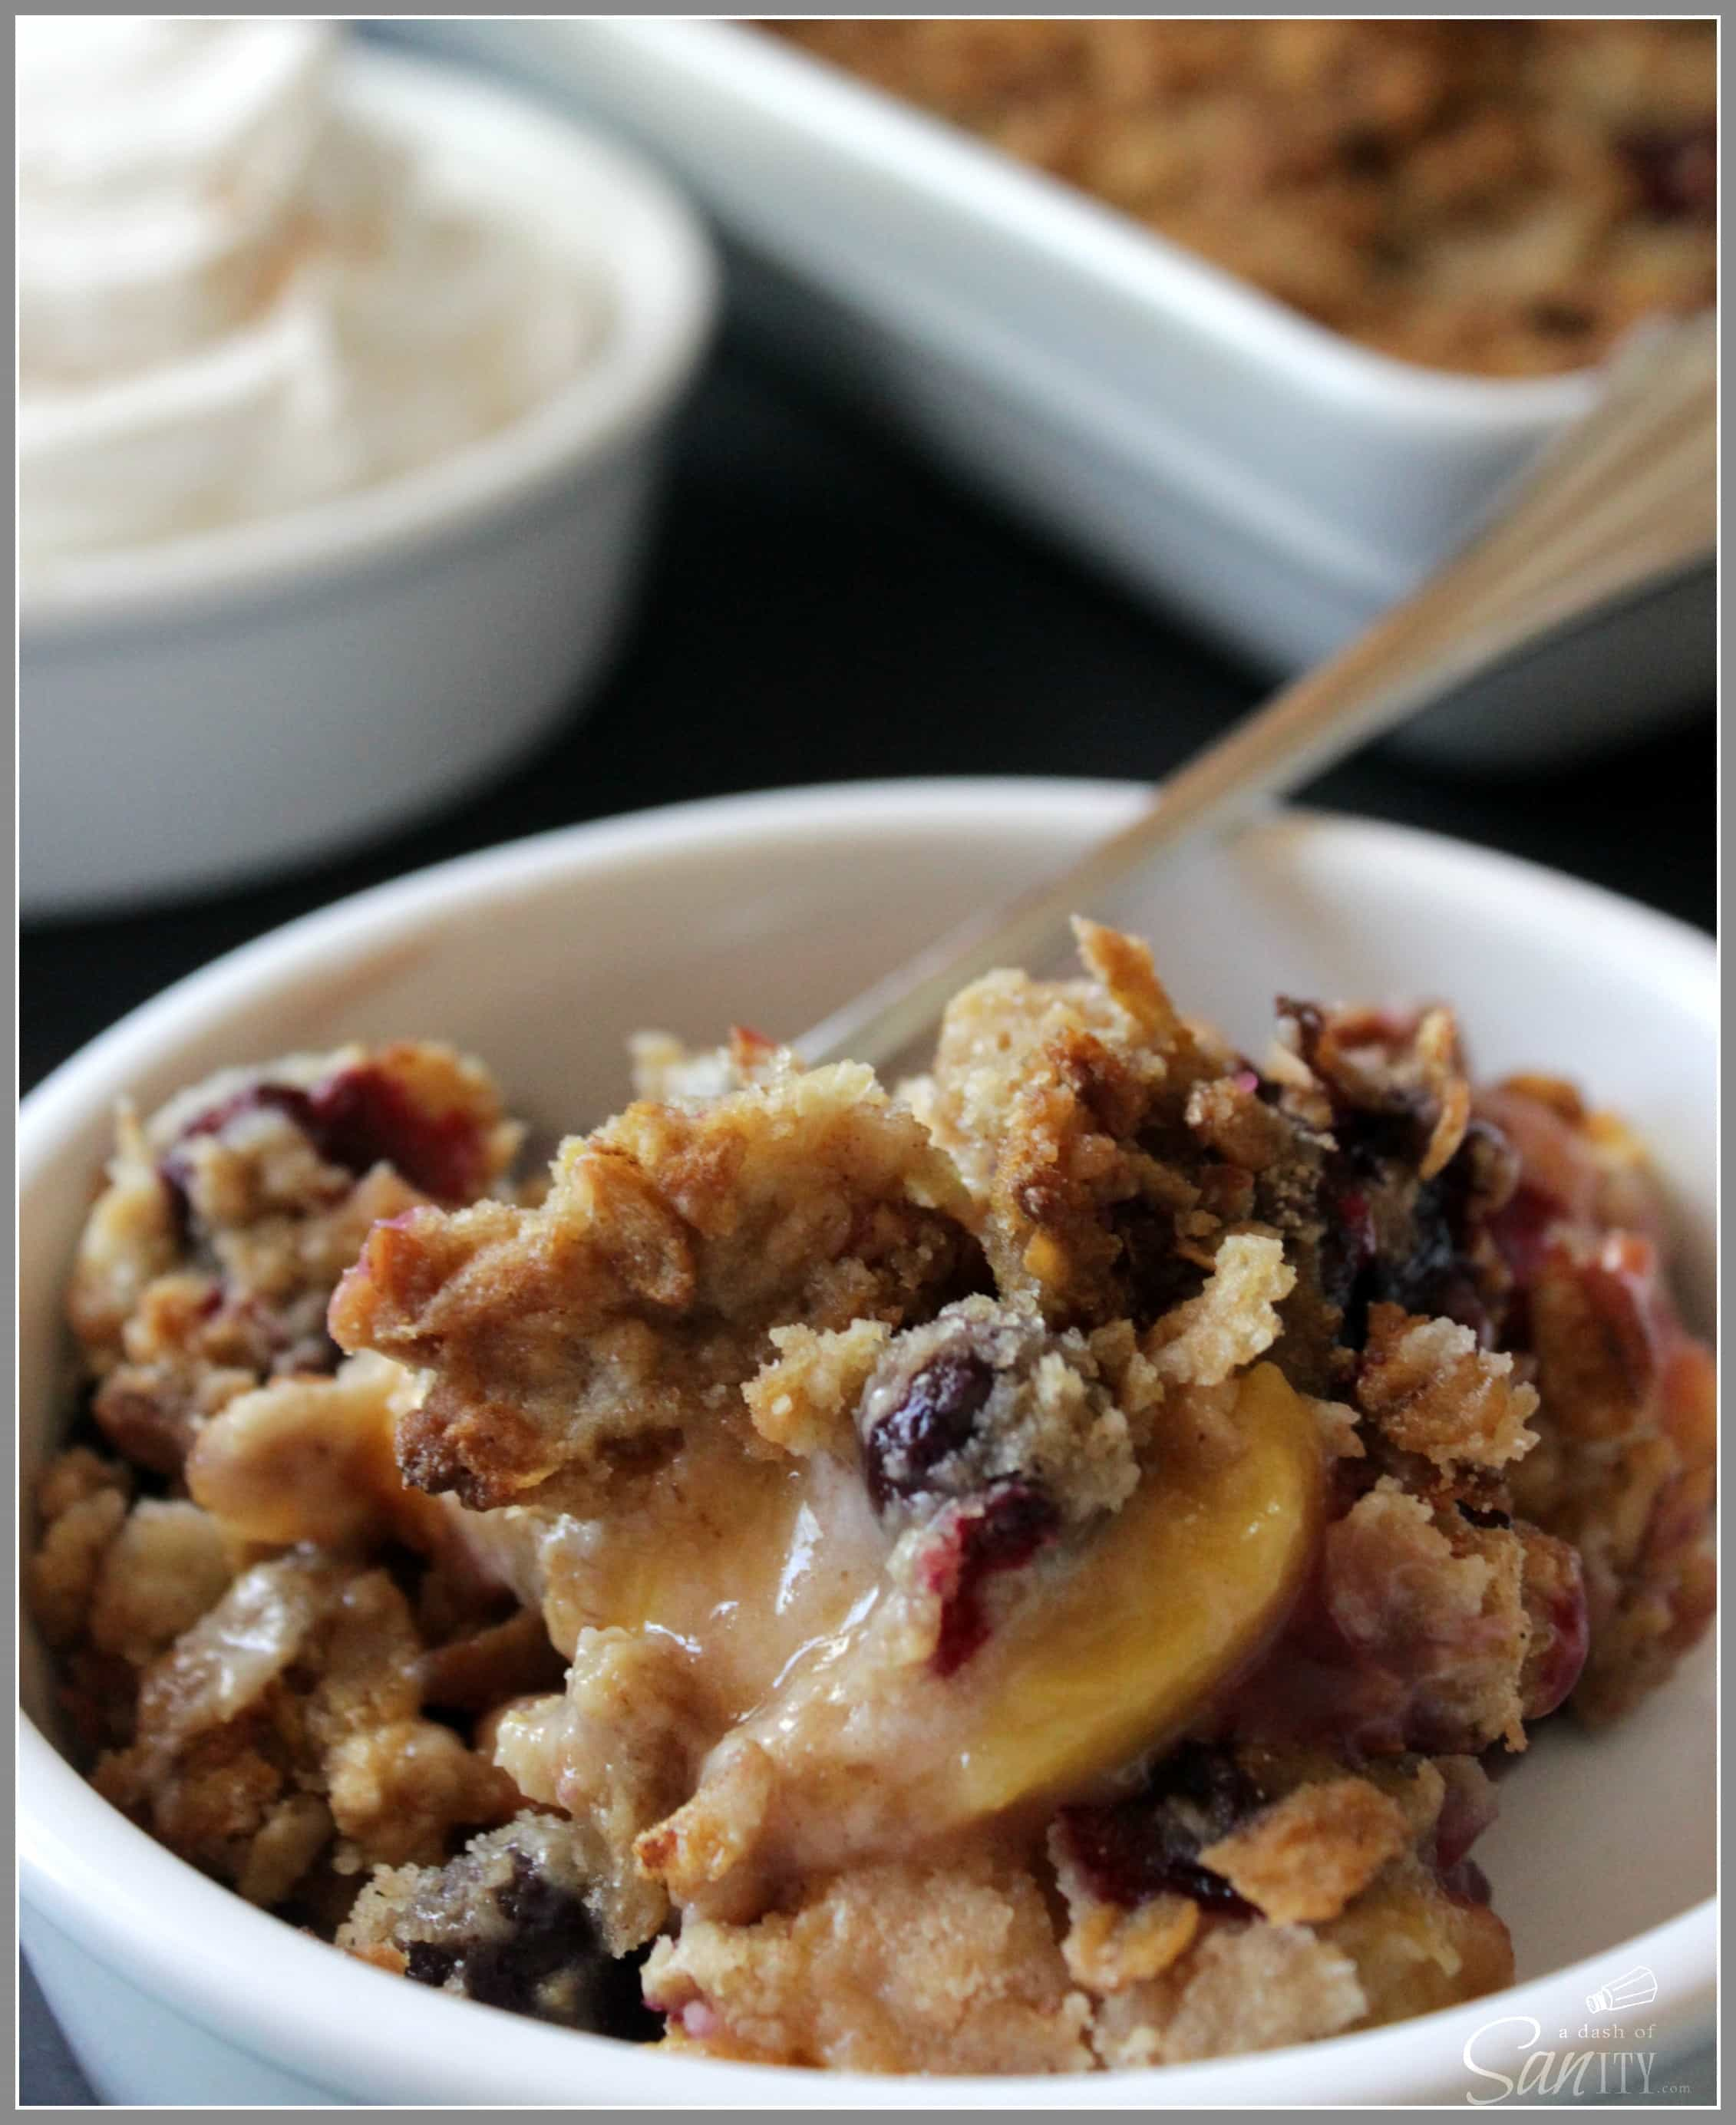 This Peach and Blueberry Cobbler with Crumb Topping can start your day off on a sweet note or end it in decadent warmth a la mode.